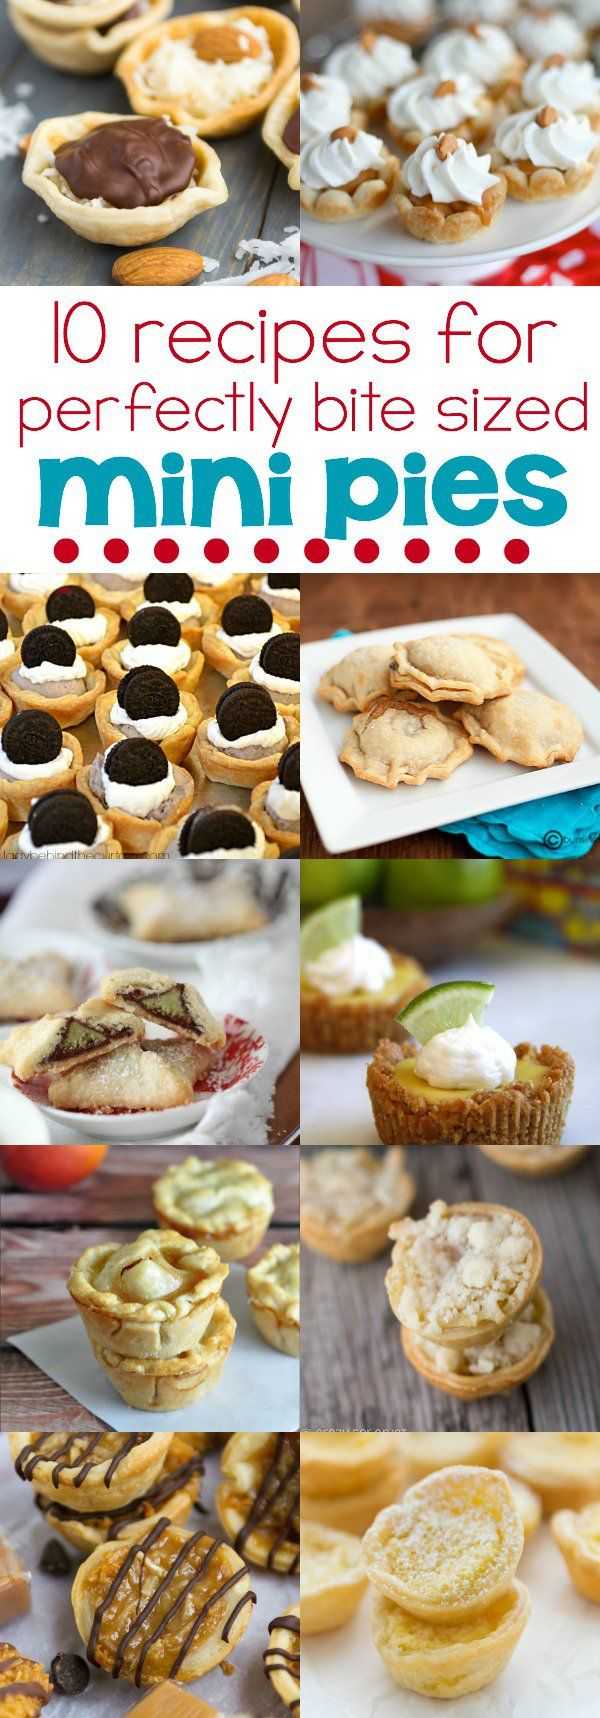 10 recipes for perfectly bite sized mini pies